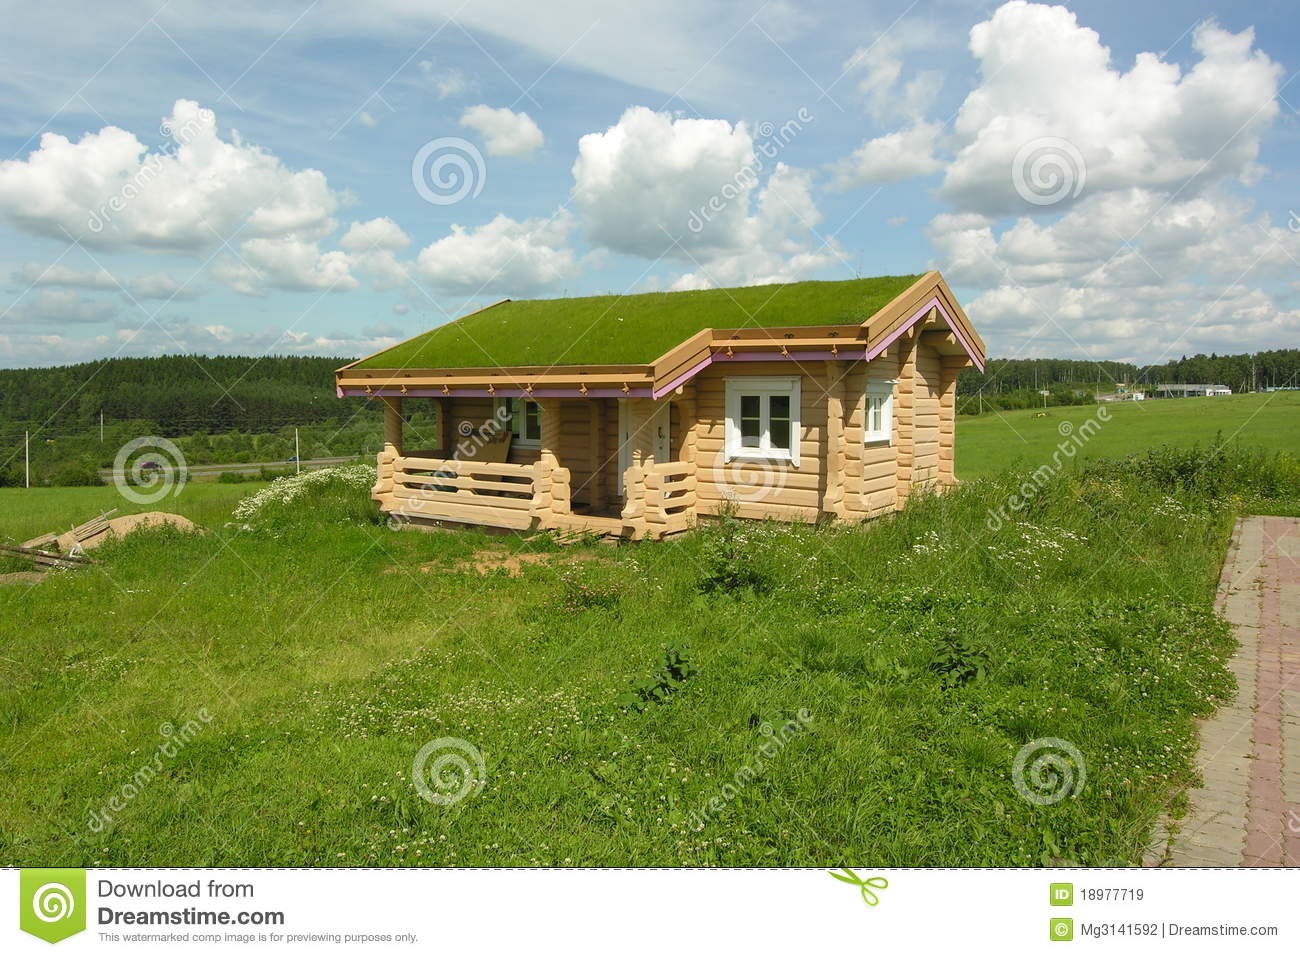 house with green roof stock image image of blue grass